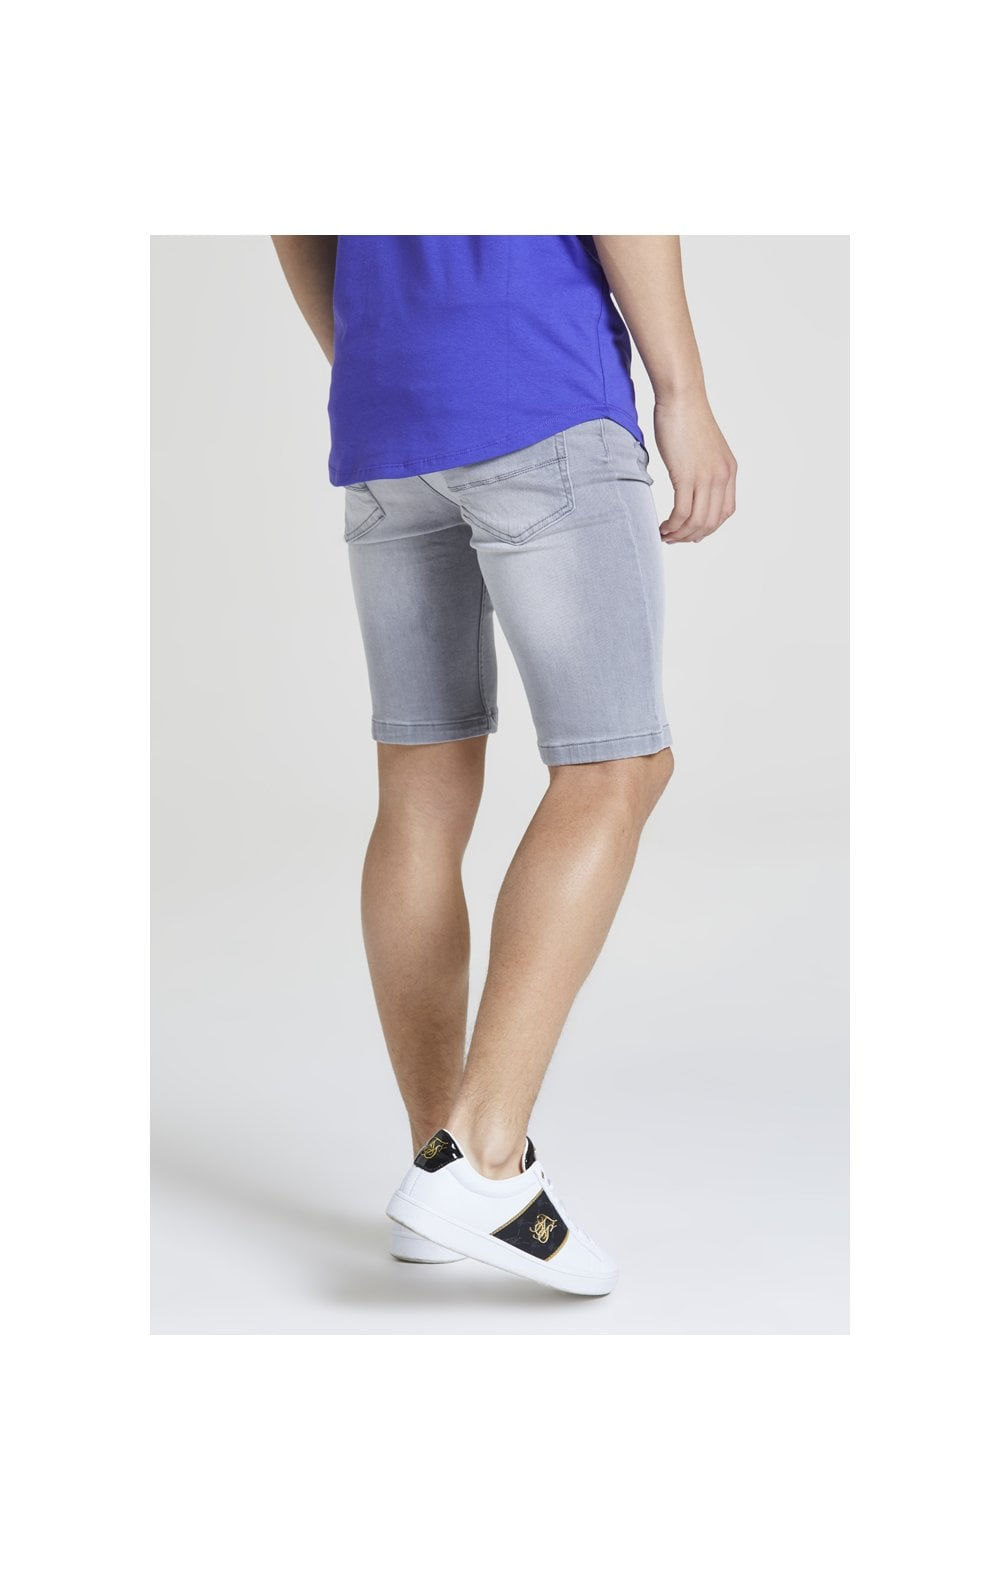 Illusive London Distressed Denim Shorts - Washed Grey (2)